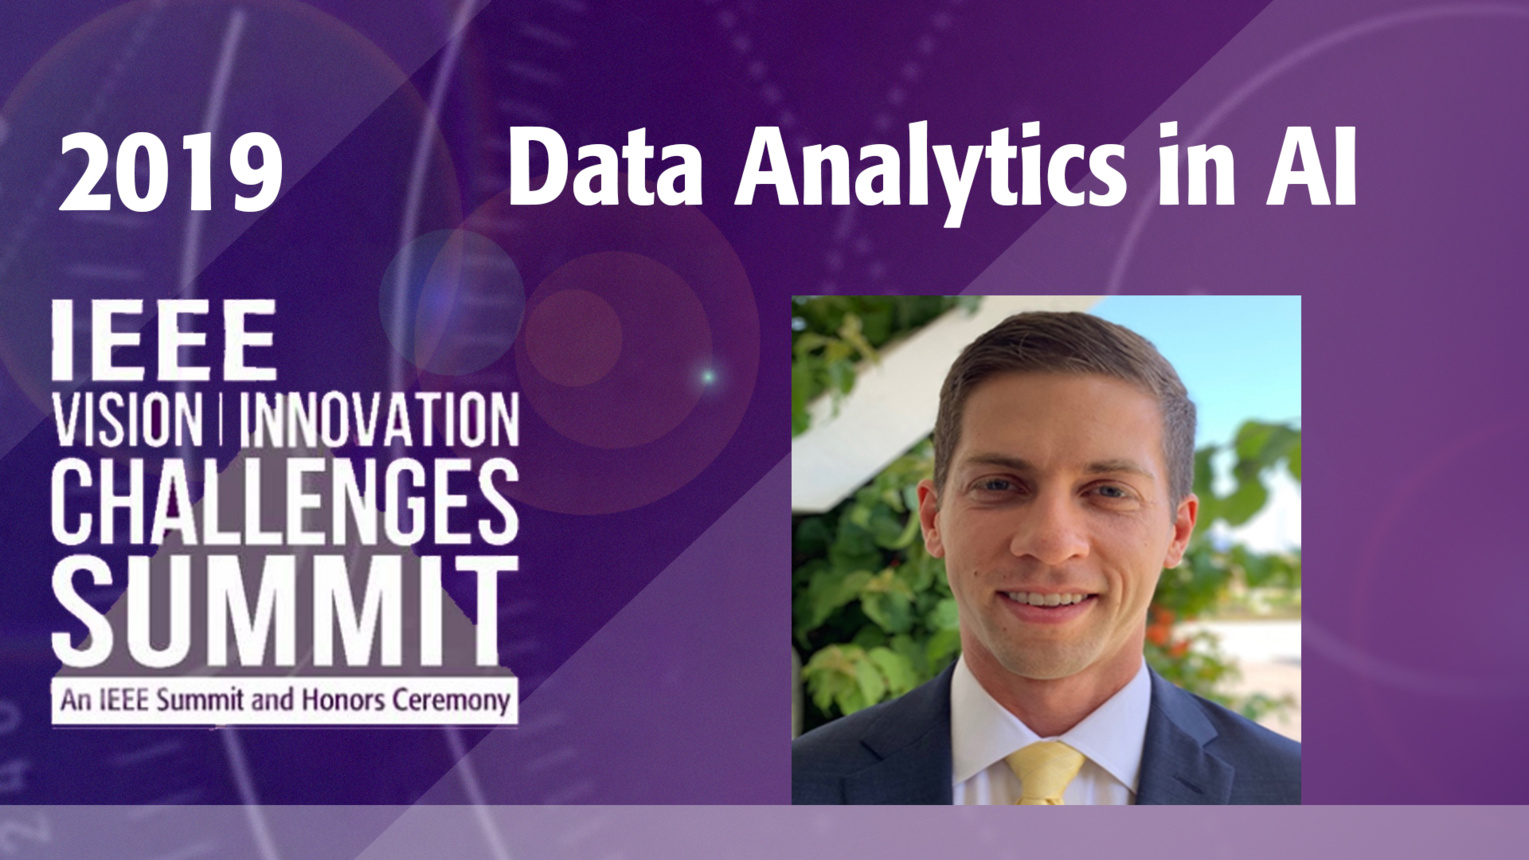 The Role of Data Analytics in AI - Nick Saunders - VIC Summit 2019